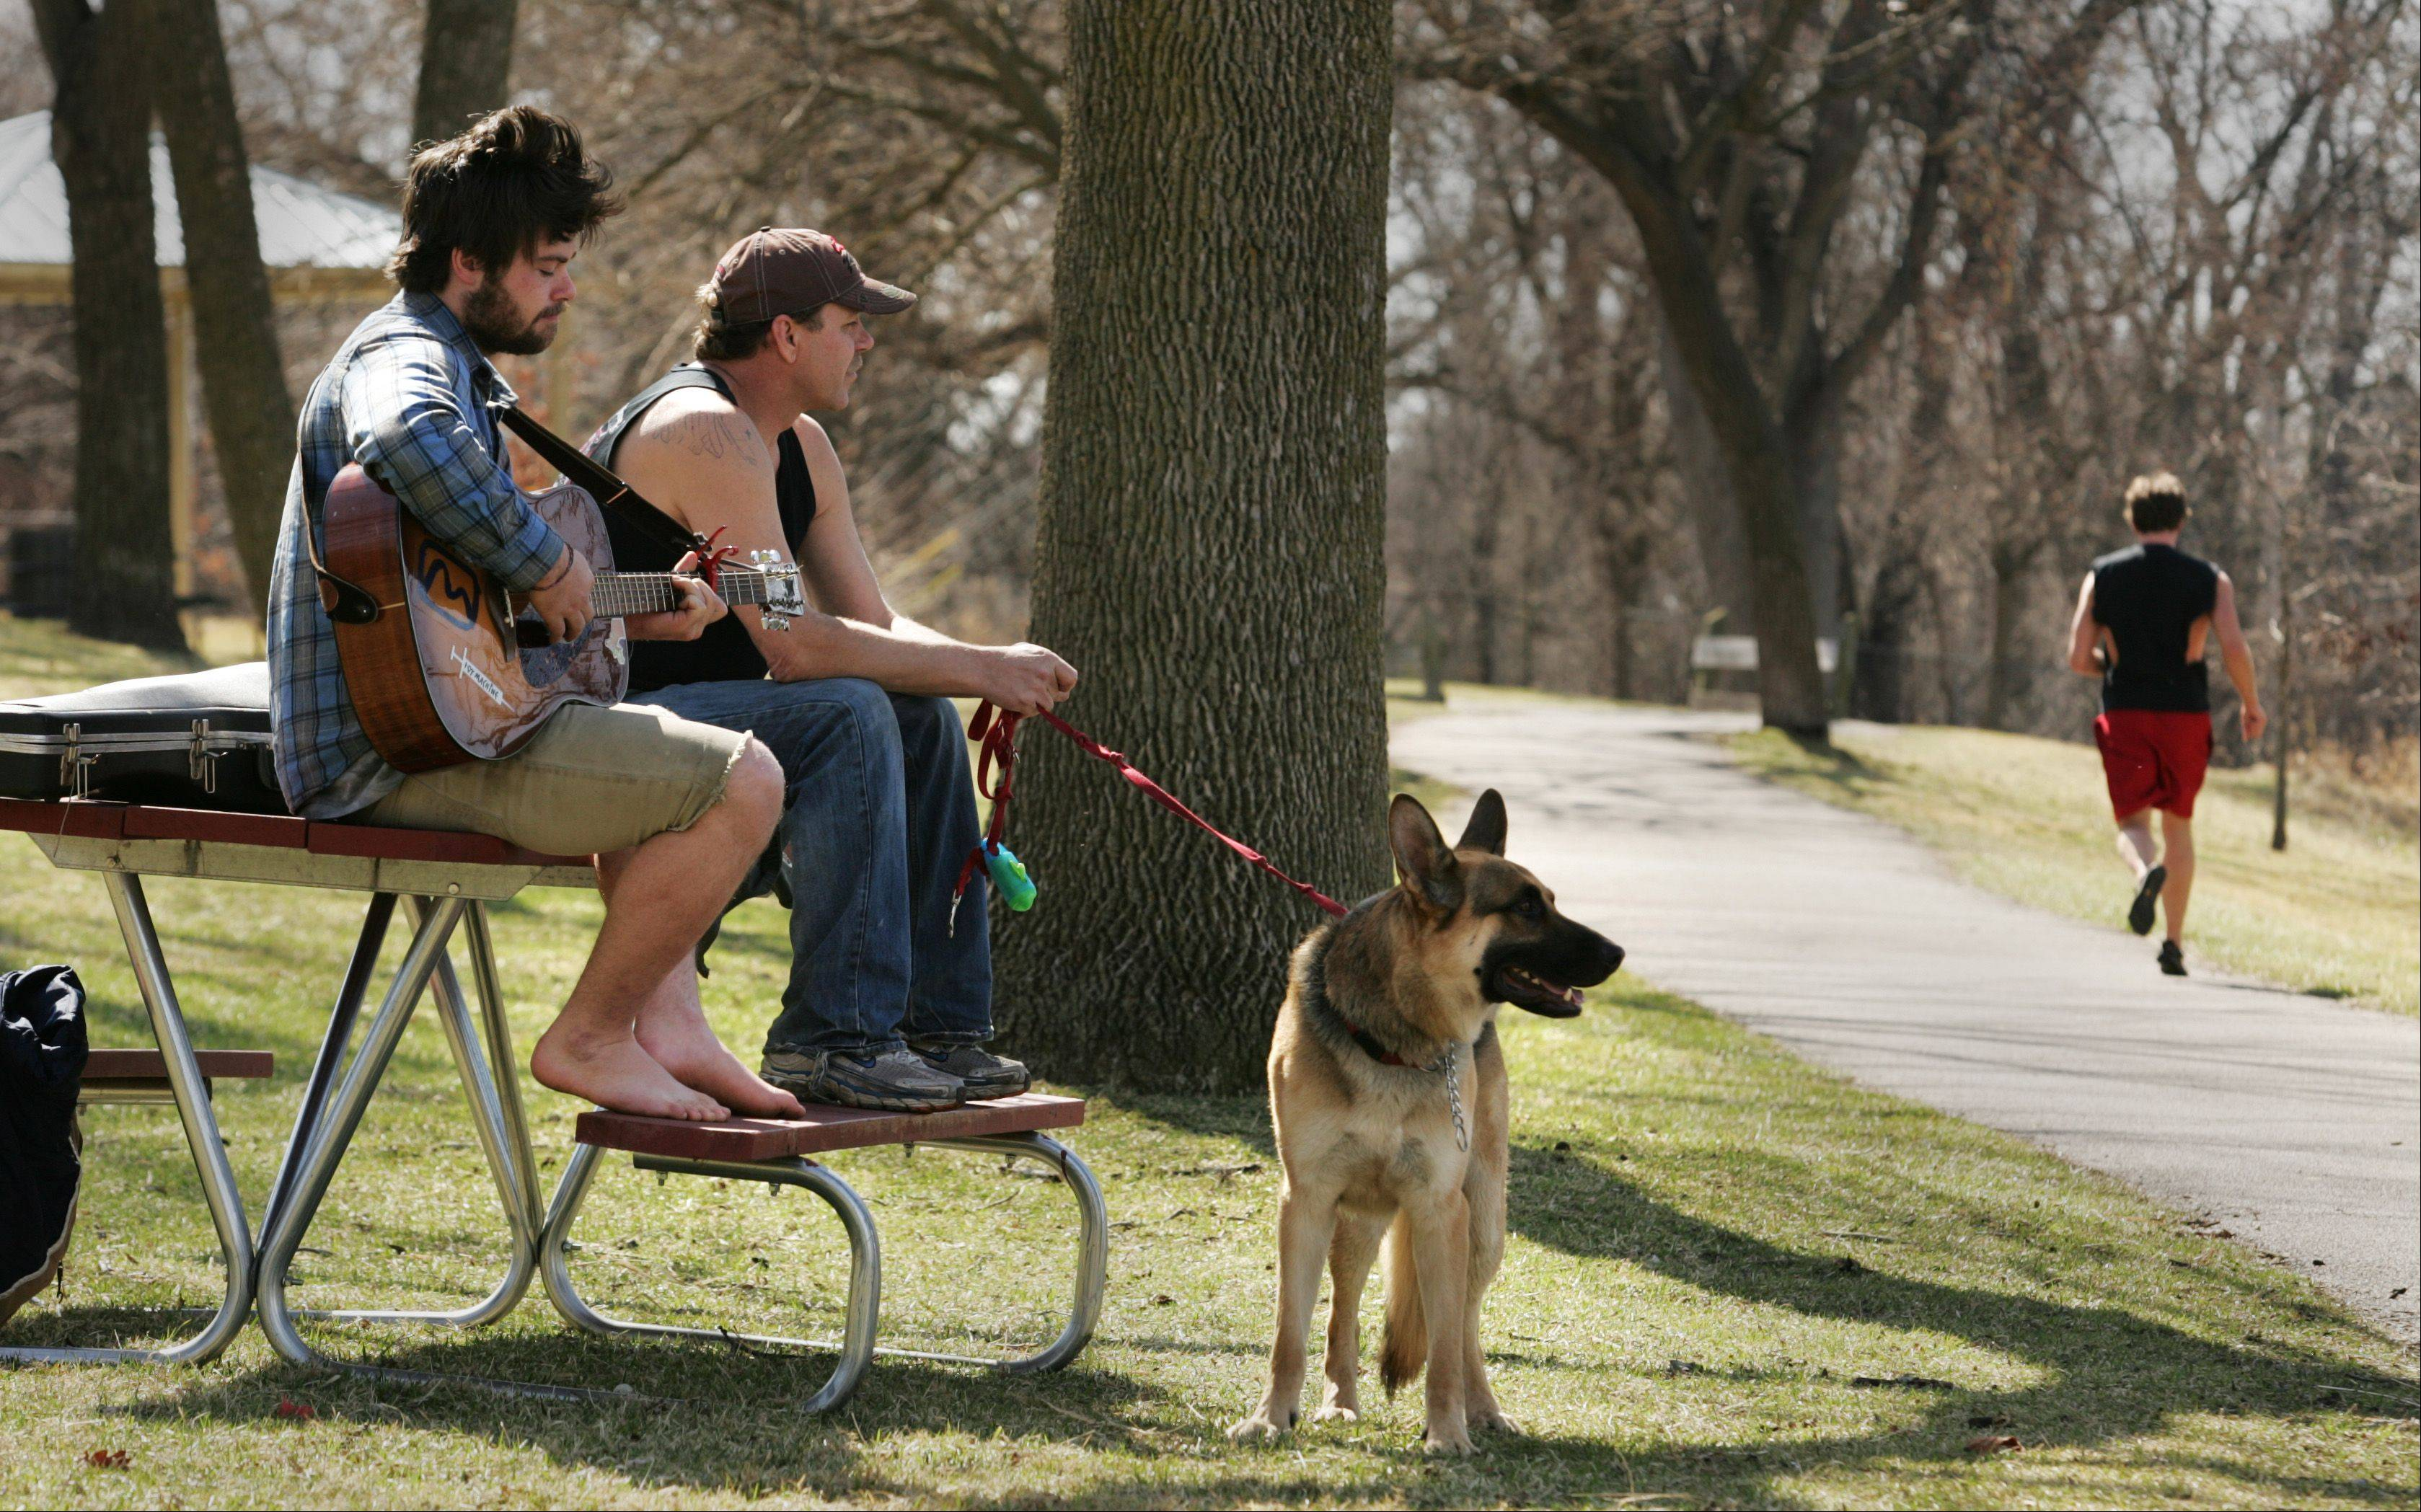 The warmest day so far in 2012 had Ben O'Brien of Geneva out along the Fox River with his guitar, his friend Don Ross, and Don's German shepherd, Hans, in Bennett Park. Runners, cyclists, walkers and picnickers were out in droves Tuesday as the sunshine made for a glorious day in the Fox Valley.